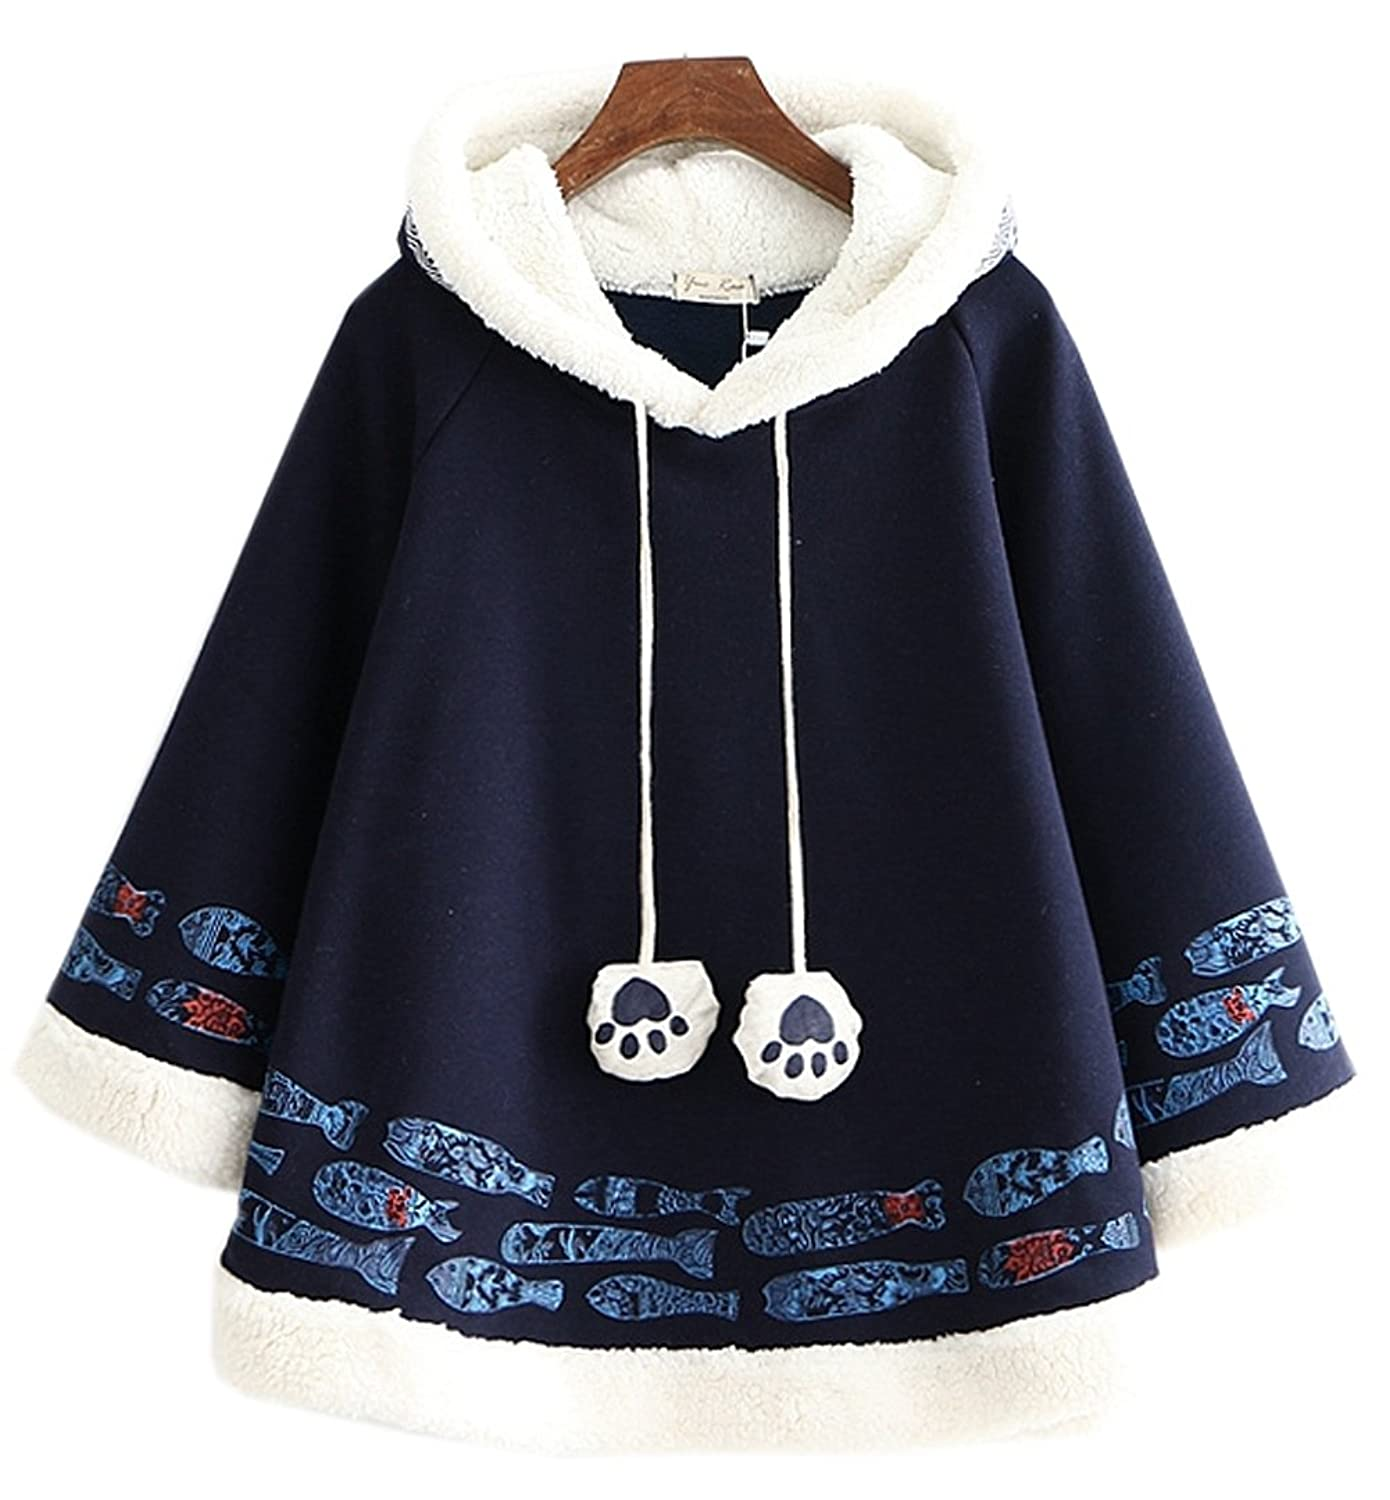 Women's Cashmere Cute Fish Pattern Cape Drawstring Hooded Coat Poncho